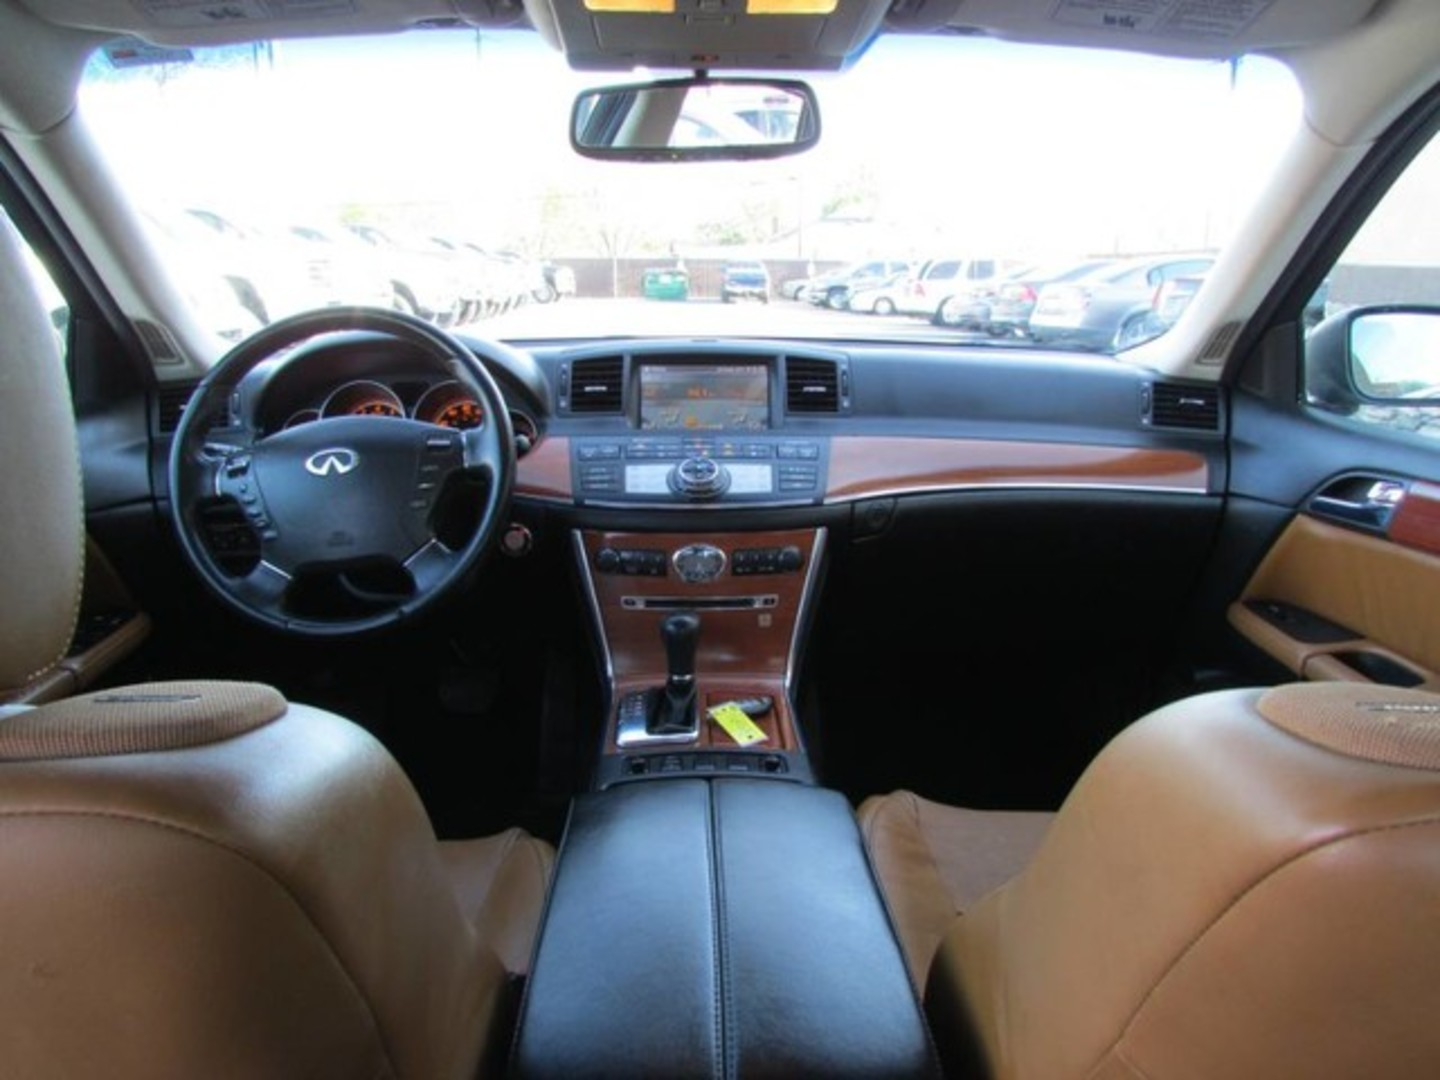 2007 infiniti m35 inside image collections hd cars wallpaper 2007 infiniti m35 x 2007 infiniti m35 x in american fork ut vanachro image collections vanachro Choice Image